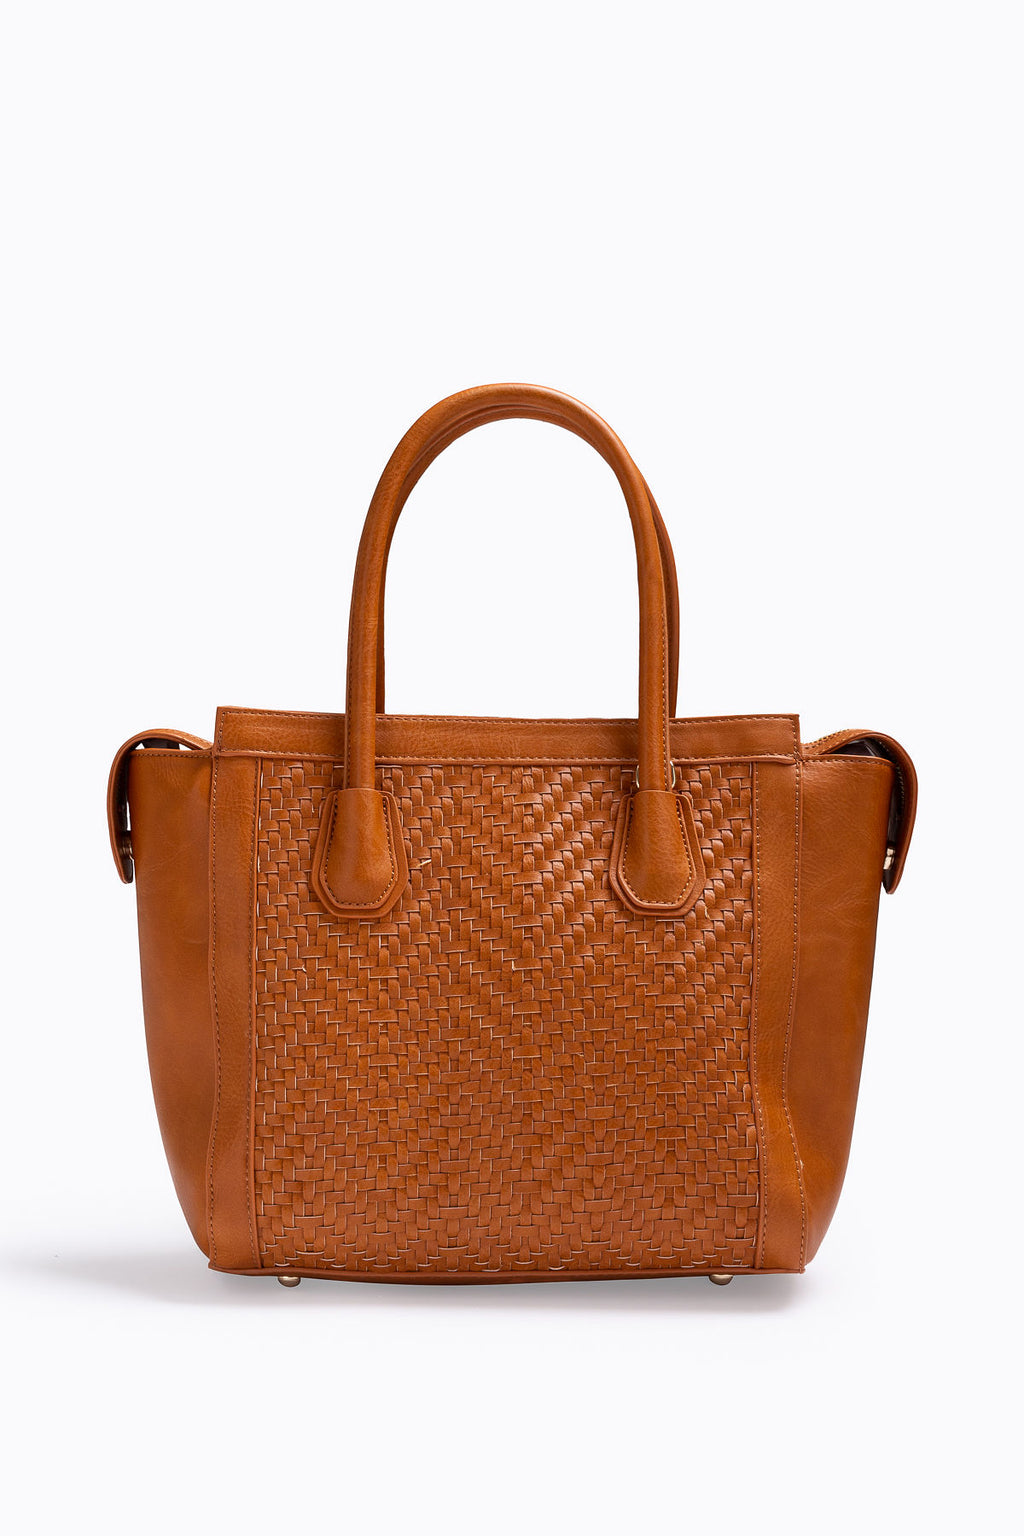 The Jagger Woven Detail Bag in Tan